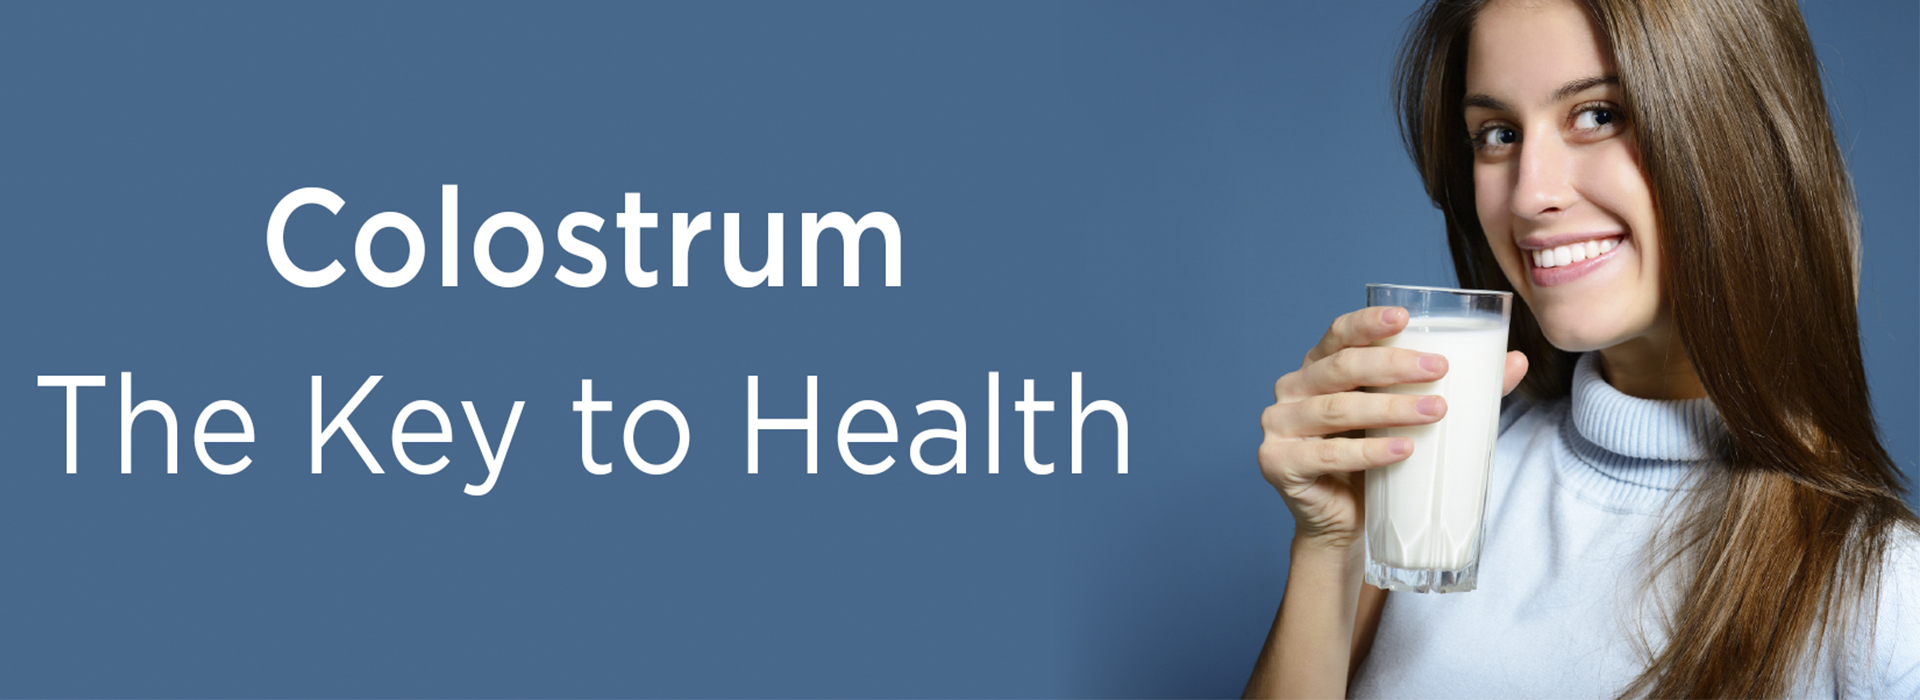 New Image International: Colostrum – The Key To Health